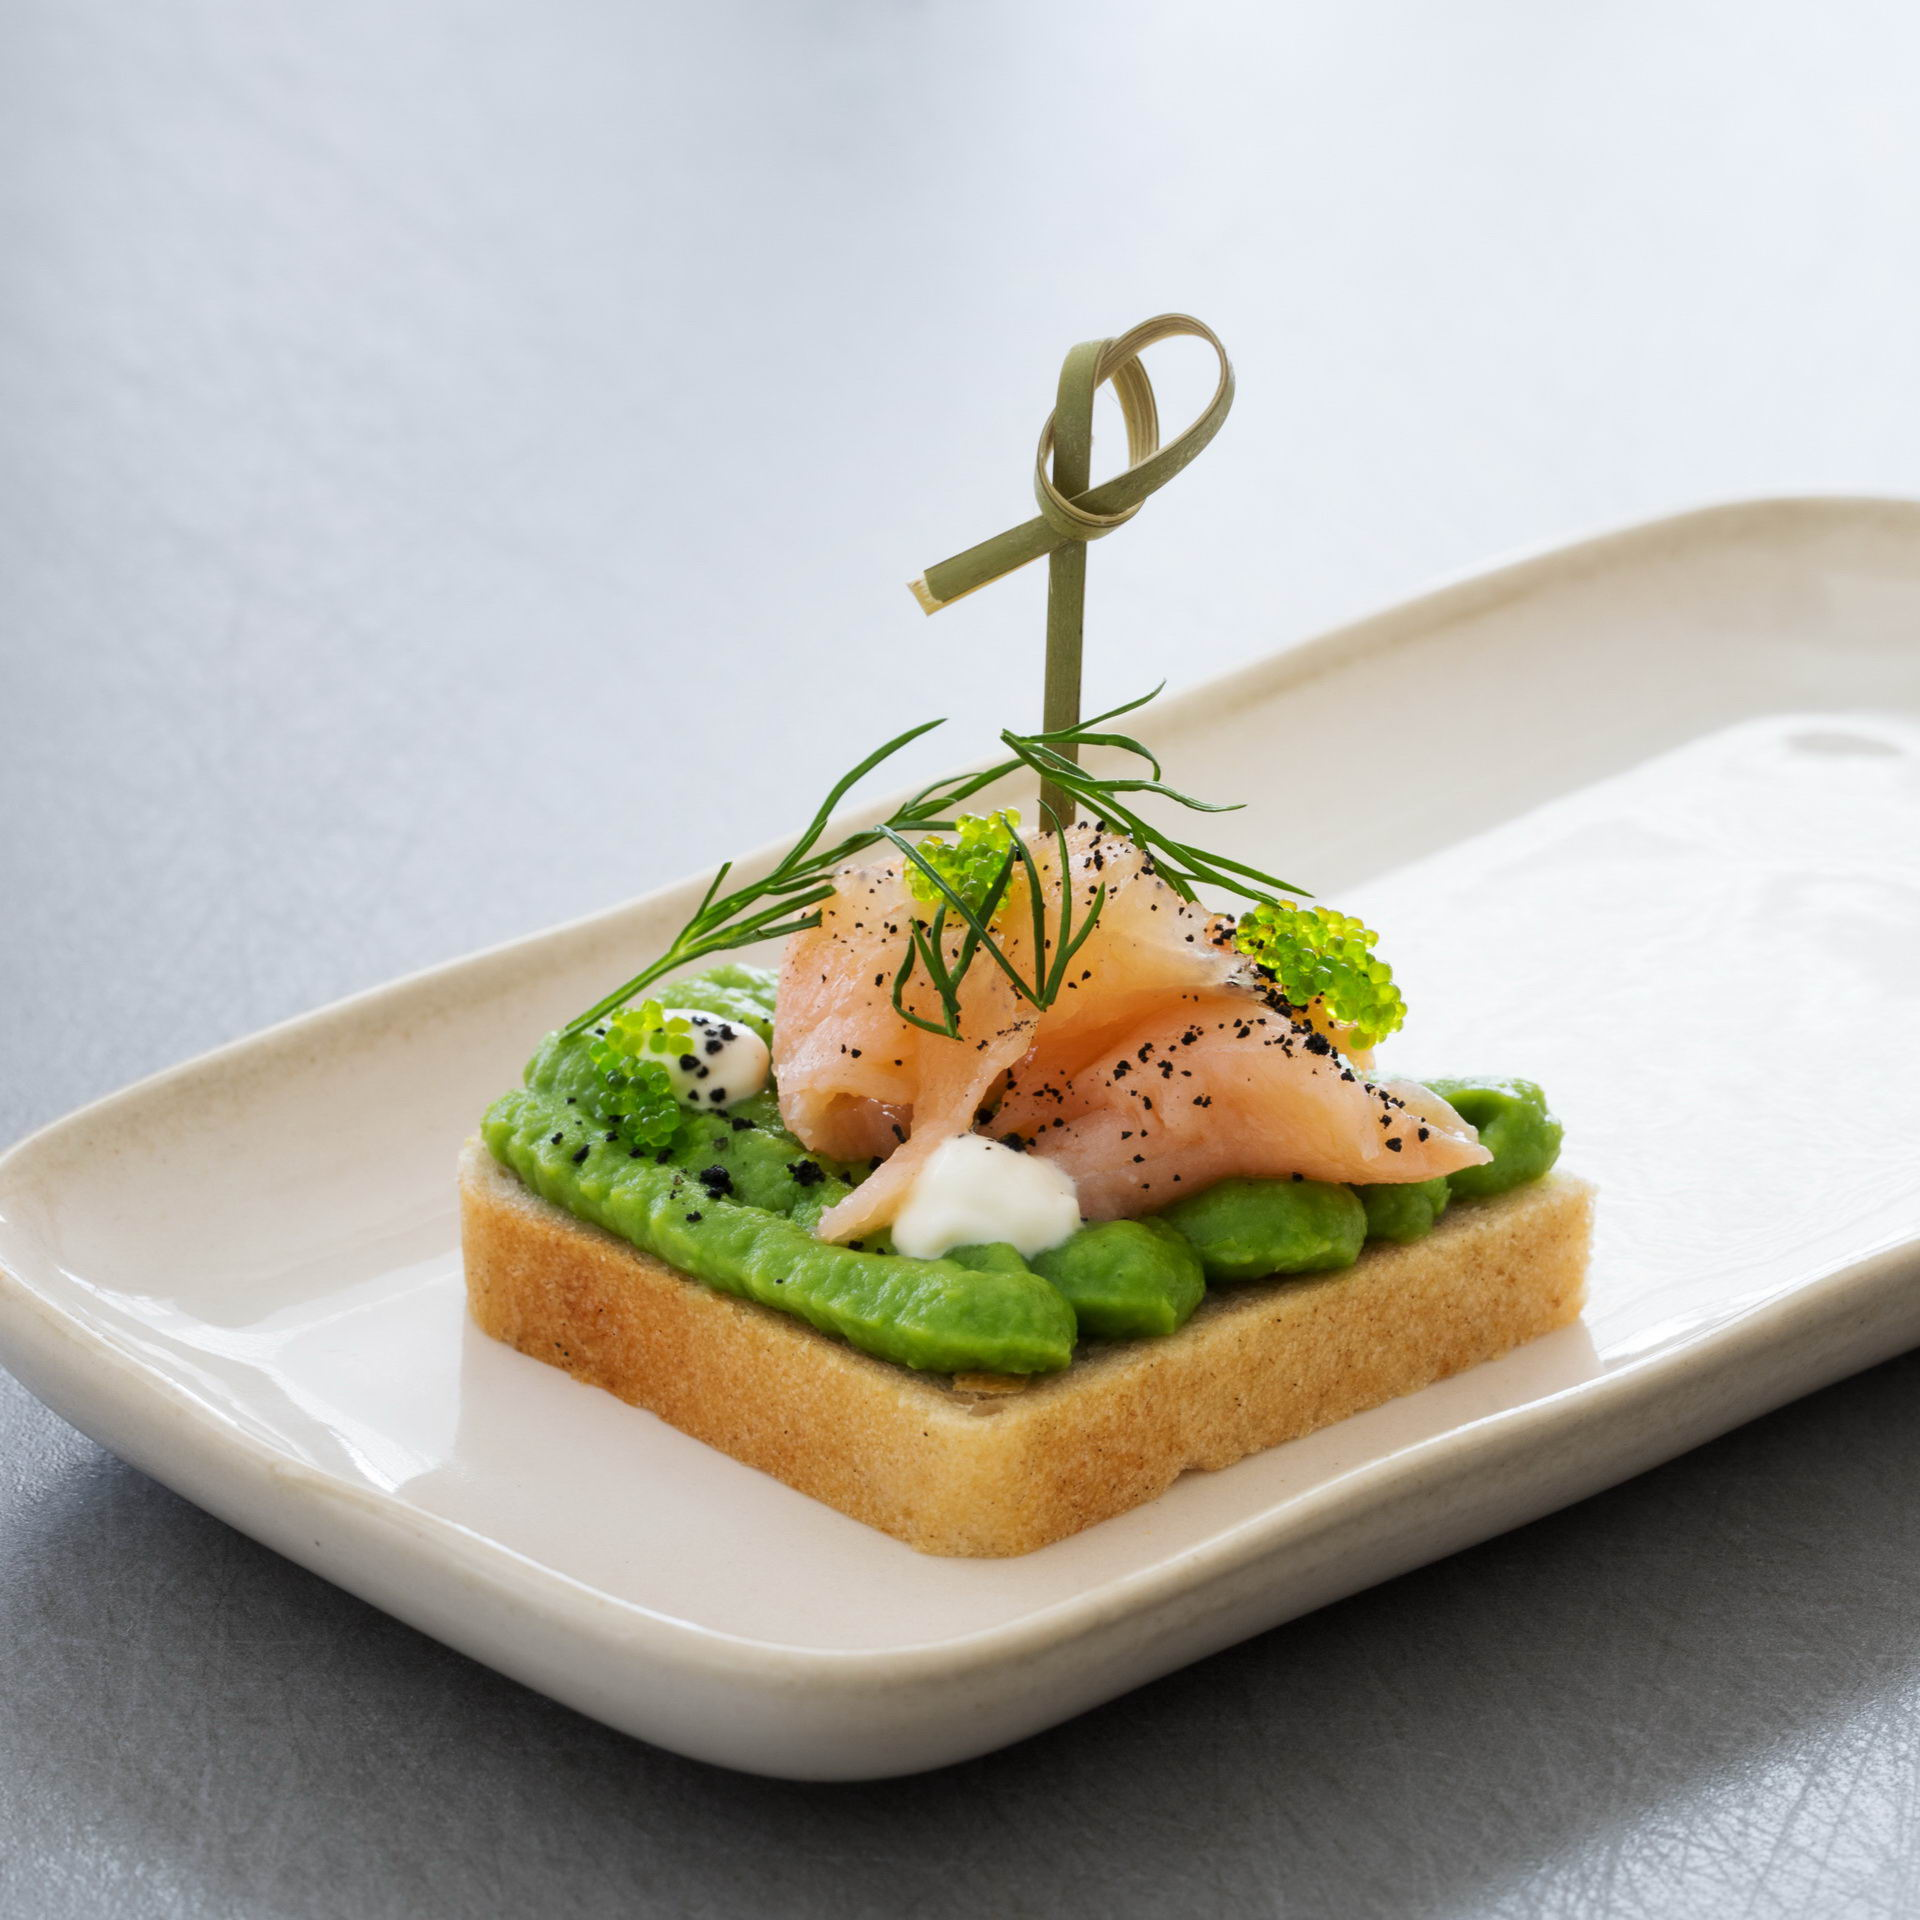 Canapé with smoked salmon